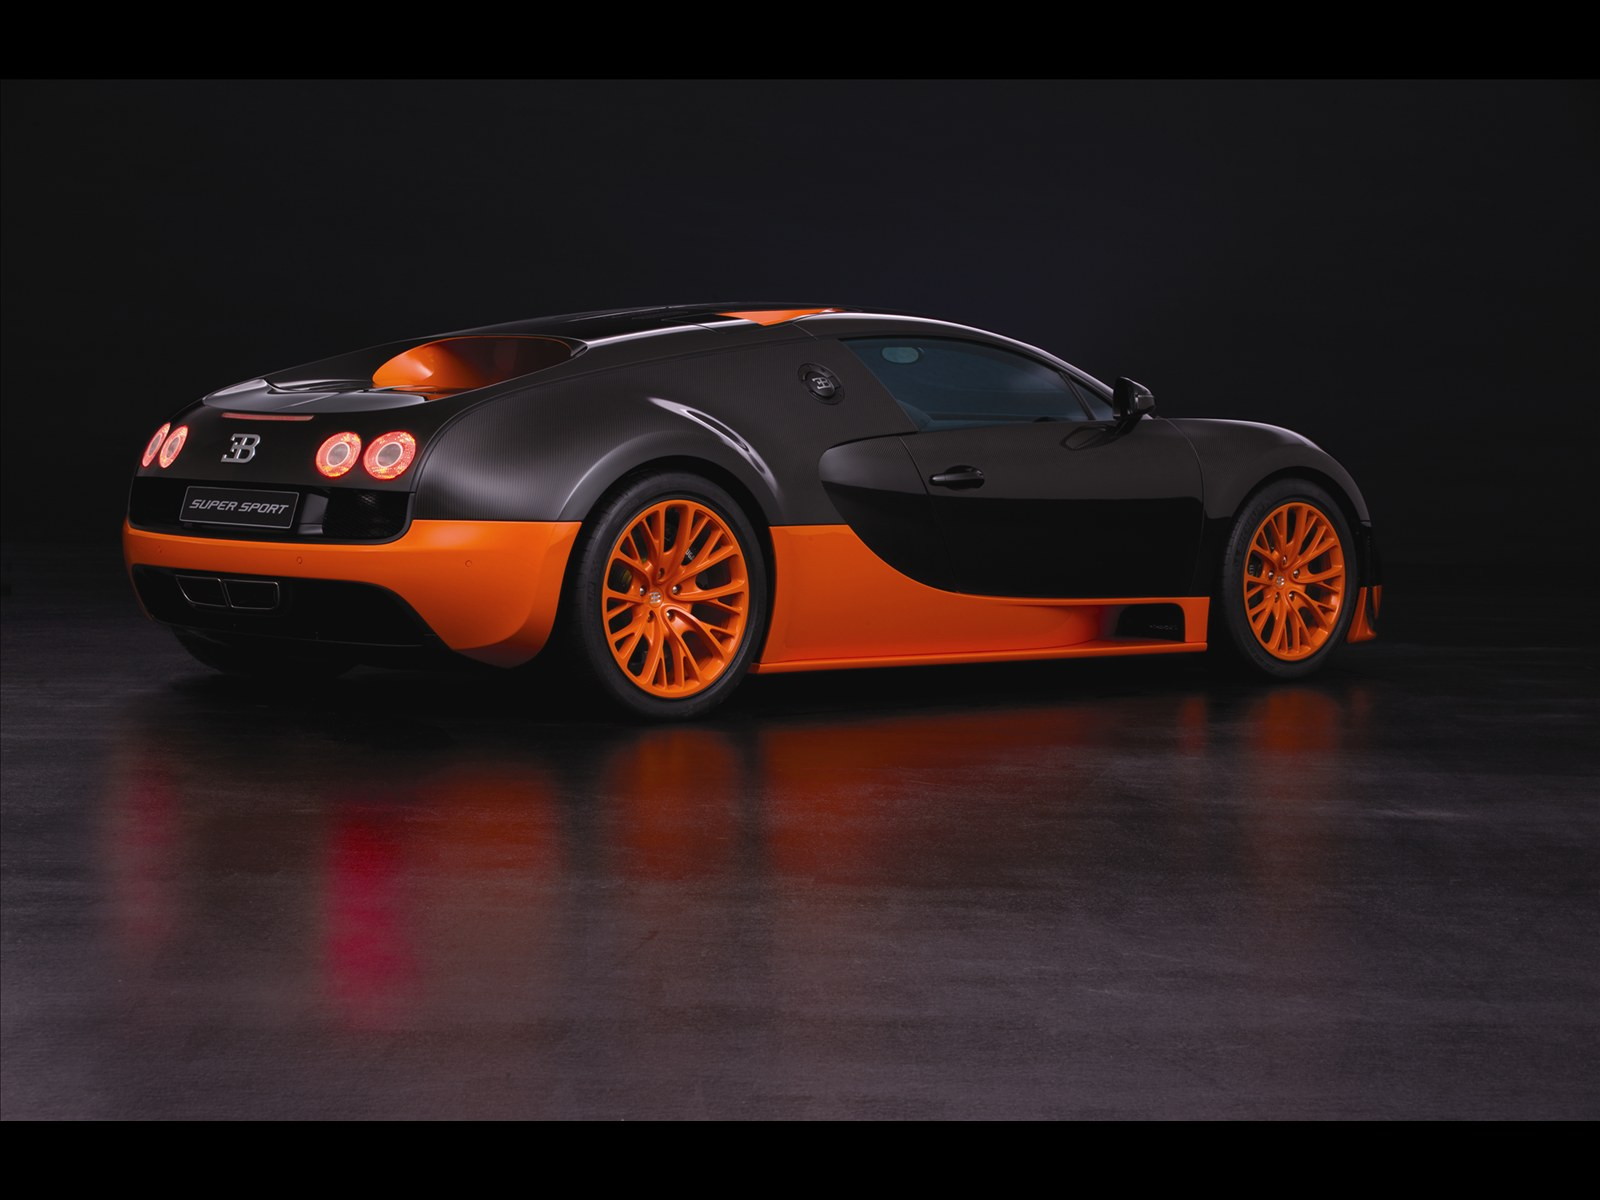 ultimate machines bugatti veyron 16 4 super sports car 2011. Black Bedroom Furniture Sets. Home Design Ideas